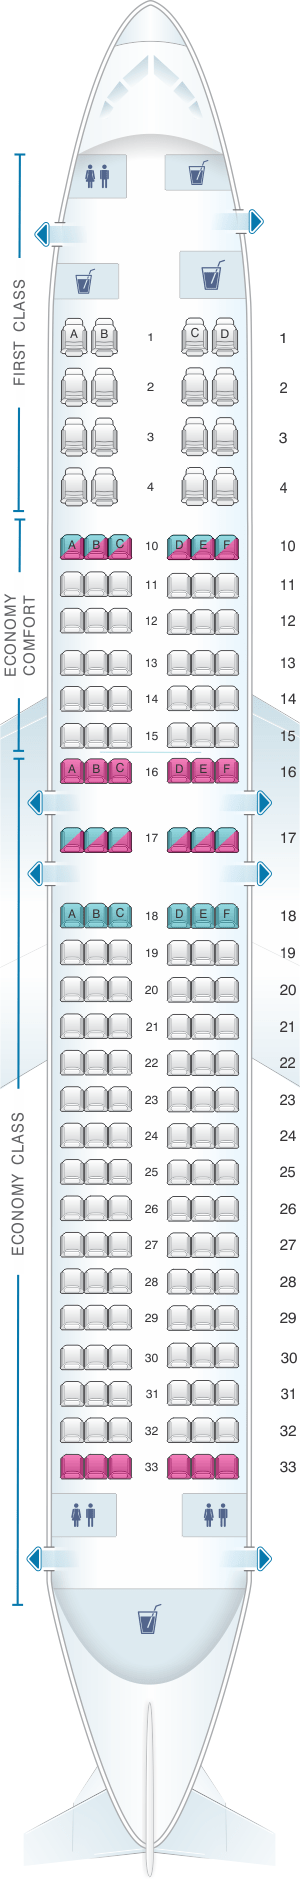 Seat Map For Delta Air Lines Boeing B737 800 738